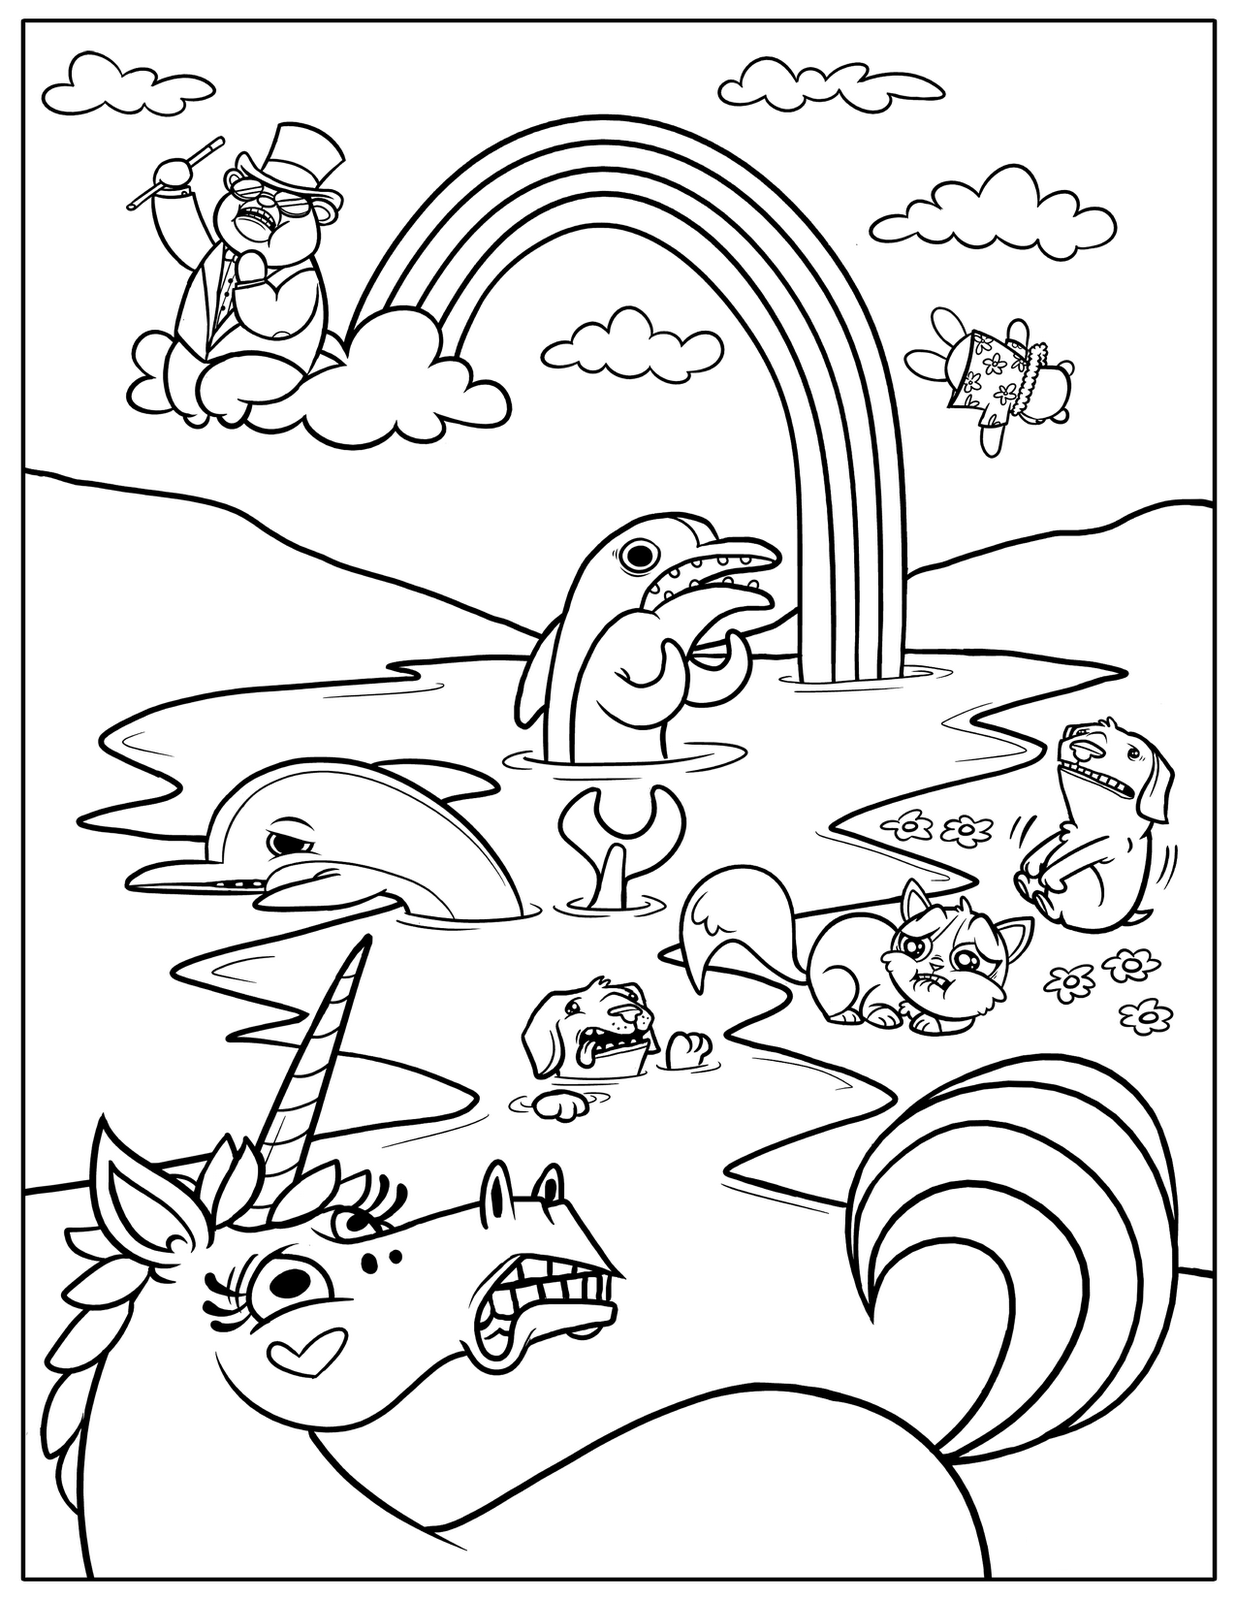 Coloring Pages For Kids Printable : Free printable rainbow coloring pages for kids